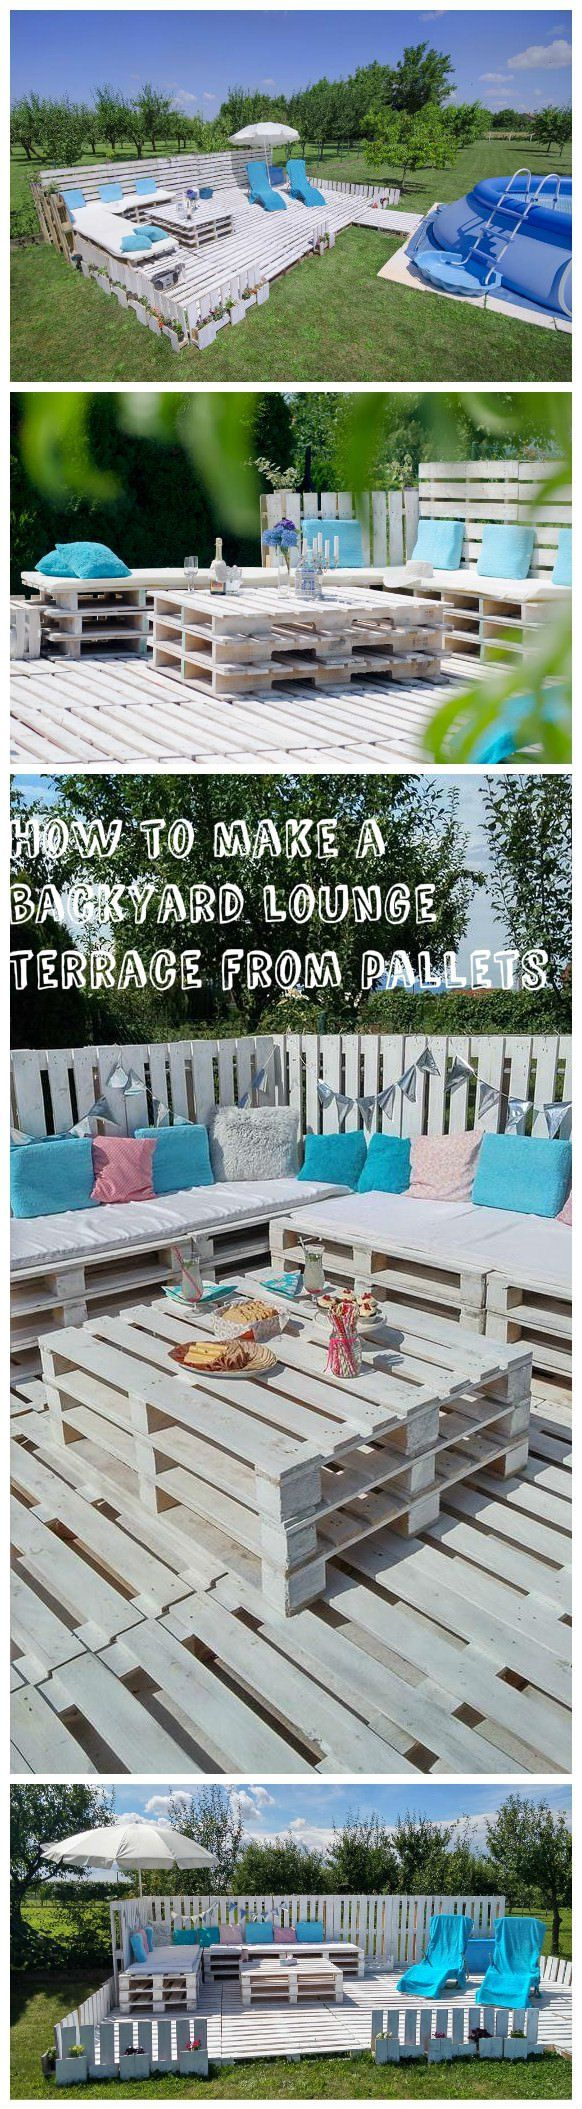 The backyard lounge party terrace you need for your 2016 summer pallet sizethe